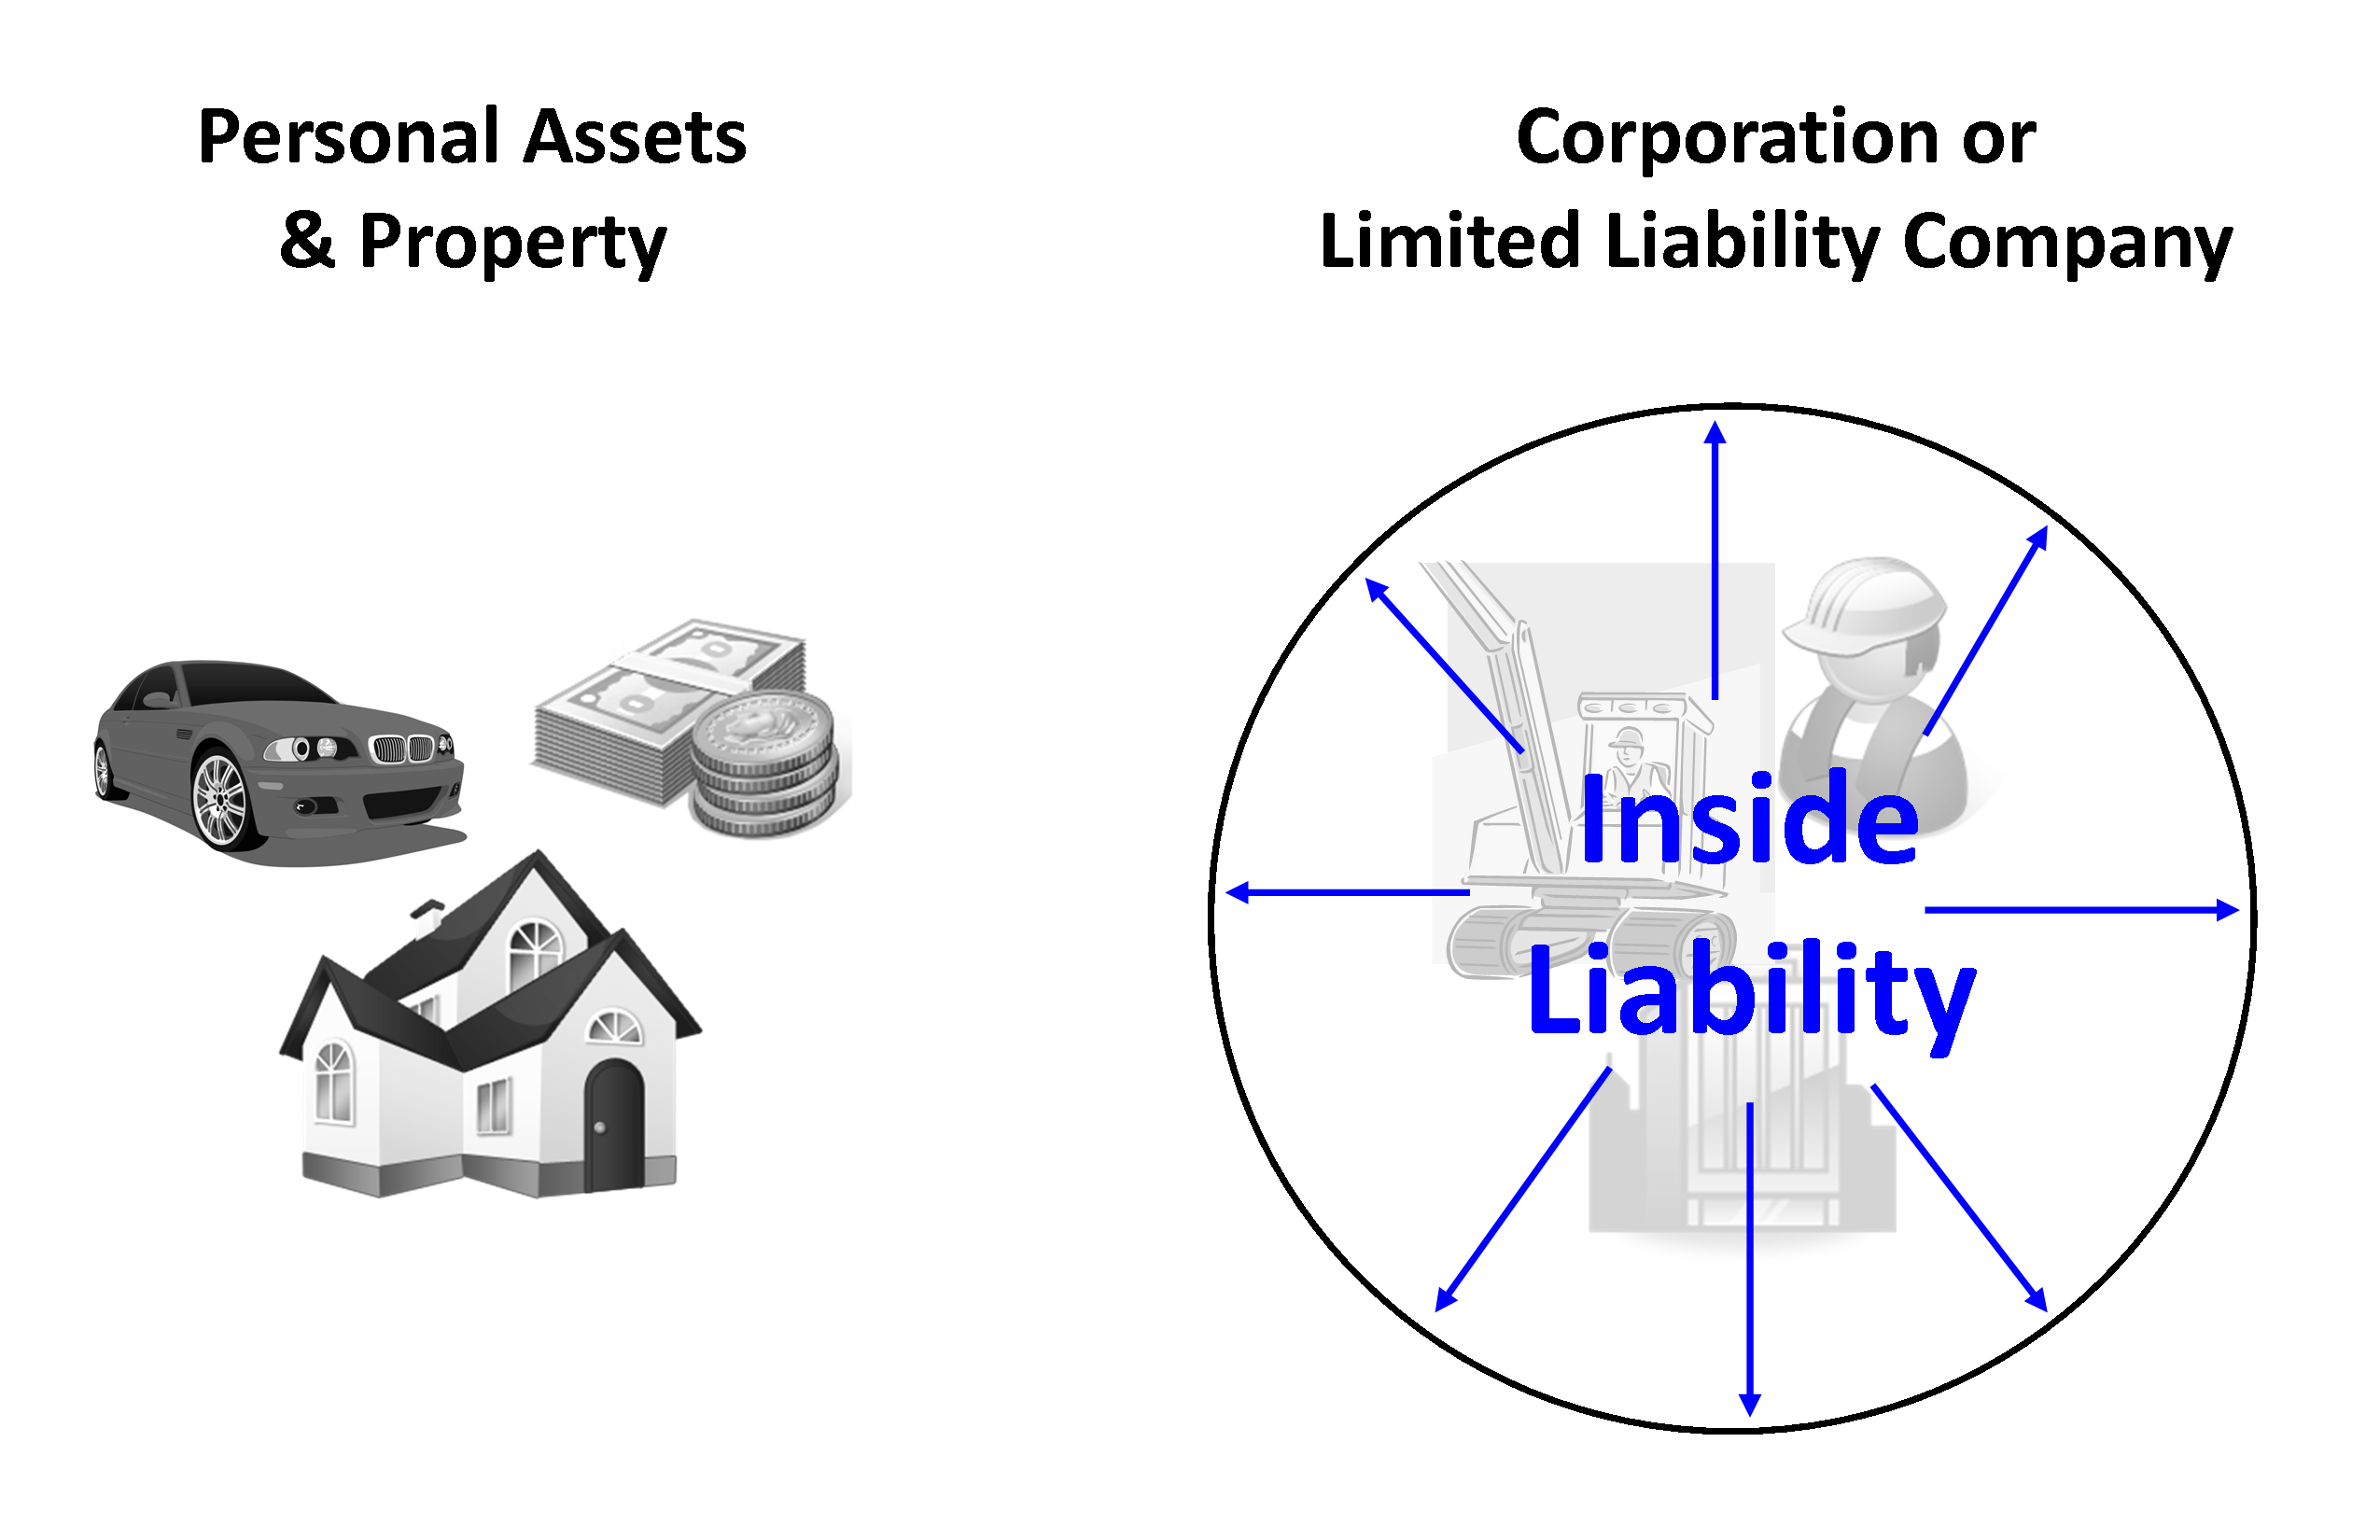 Inside Liability Protection for Business Entity